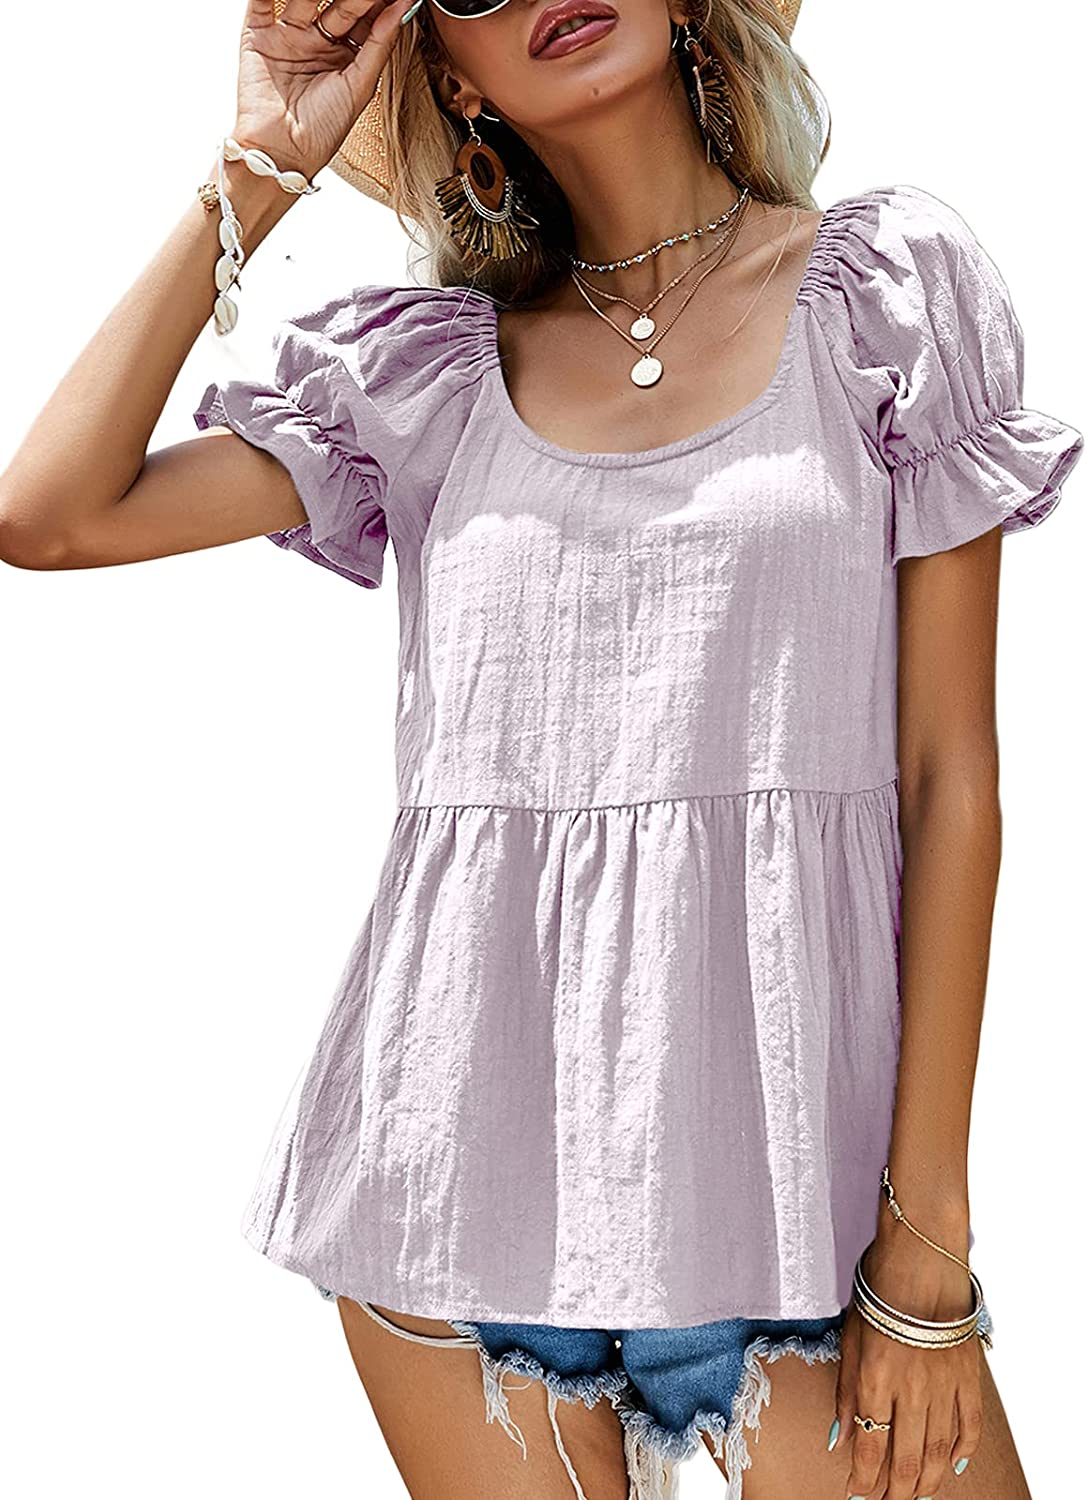 Womens Casual Puff Sleeve Babydoll Blouse Tops Scoop Neck Loose Solid Summer Peplum Tunic Tops